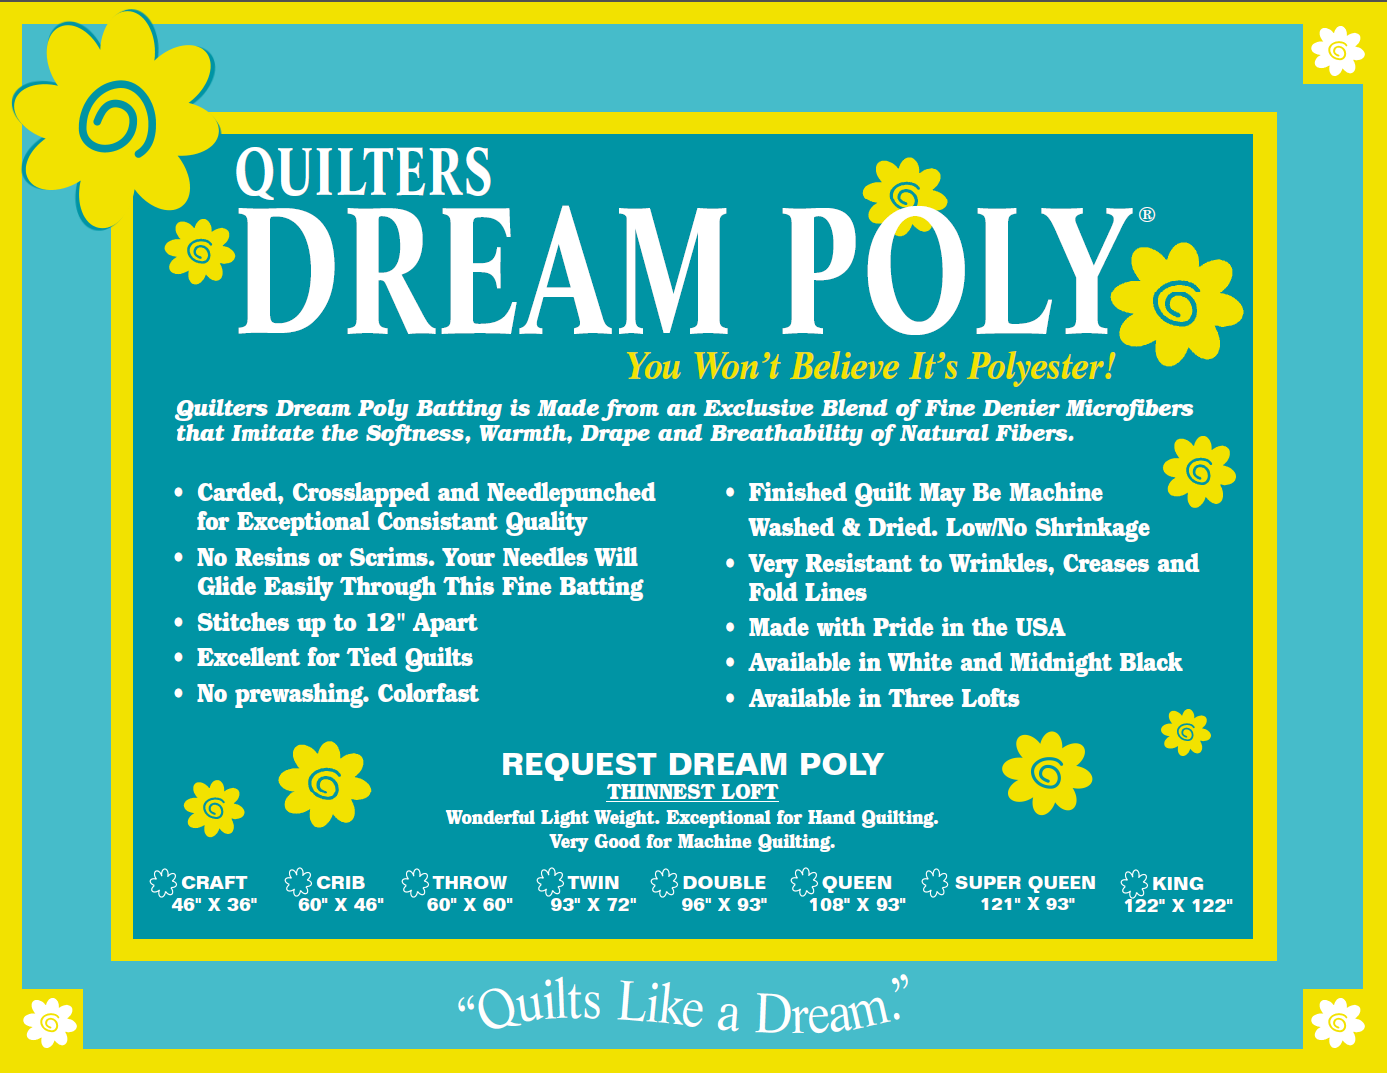 KING REQUEST Quilters Dream Poly